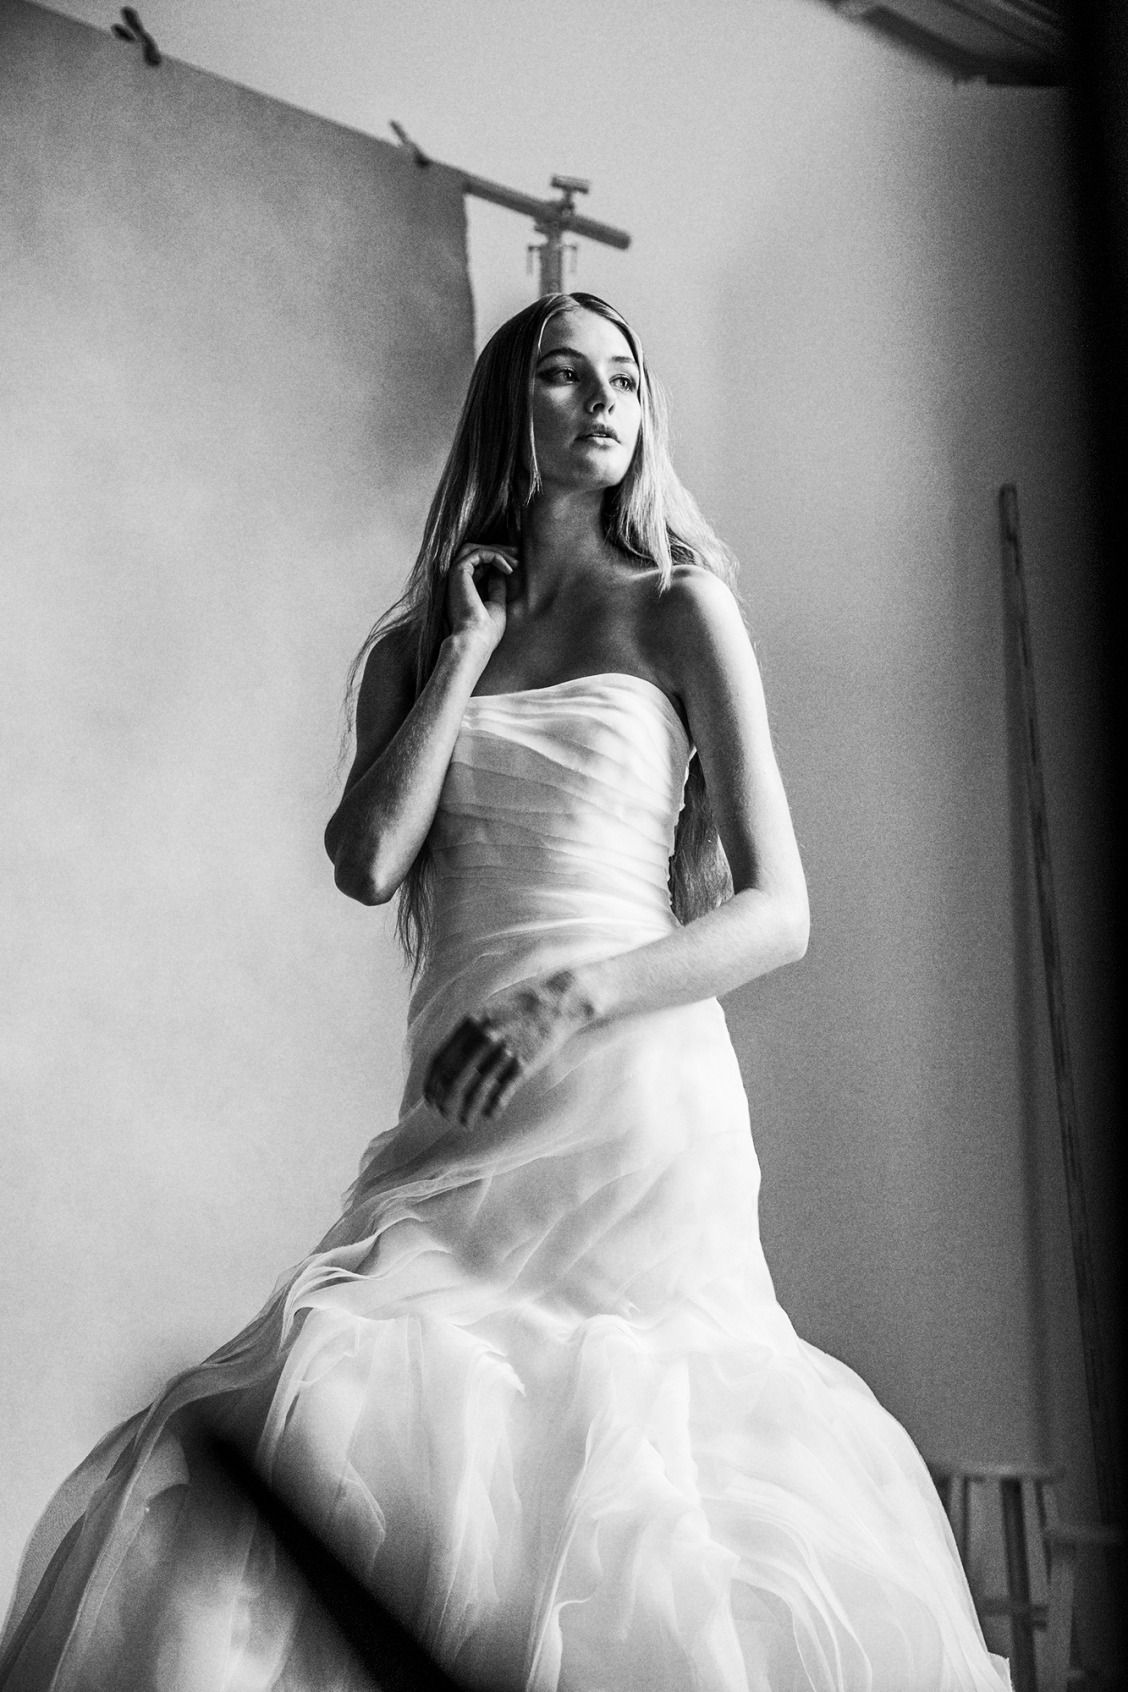 f46b5e2ed91c ... latest from the WHITE by Vera Wang wedding dress collection. Seven new wedding  gowns to choose from. Shop the collection exclusively at David's Bridal